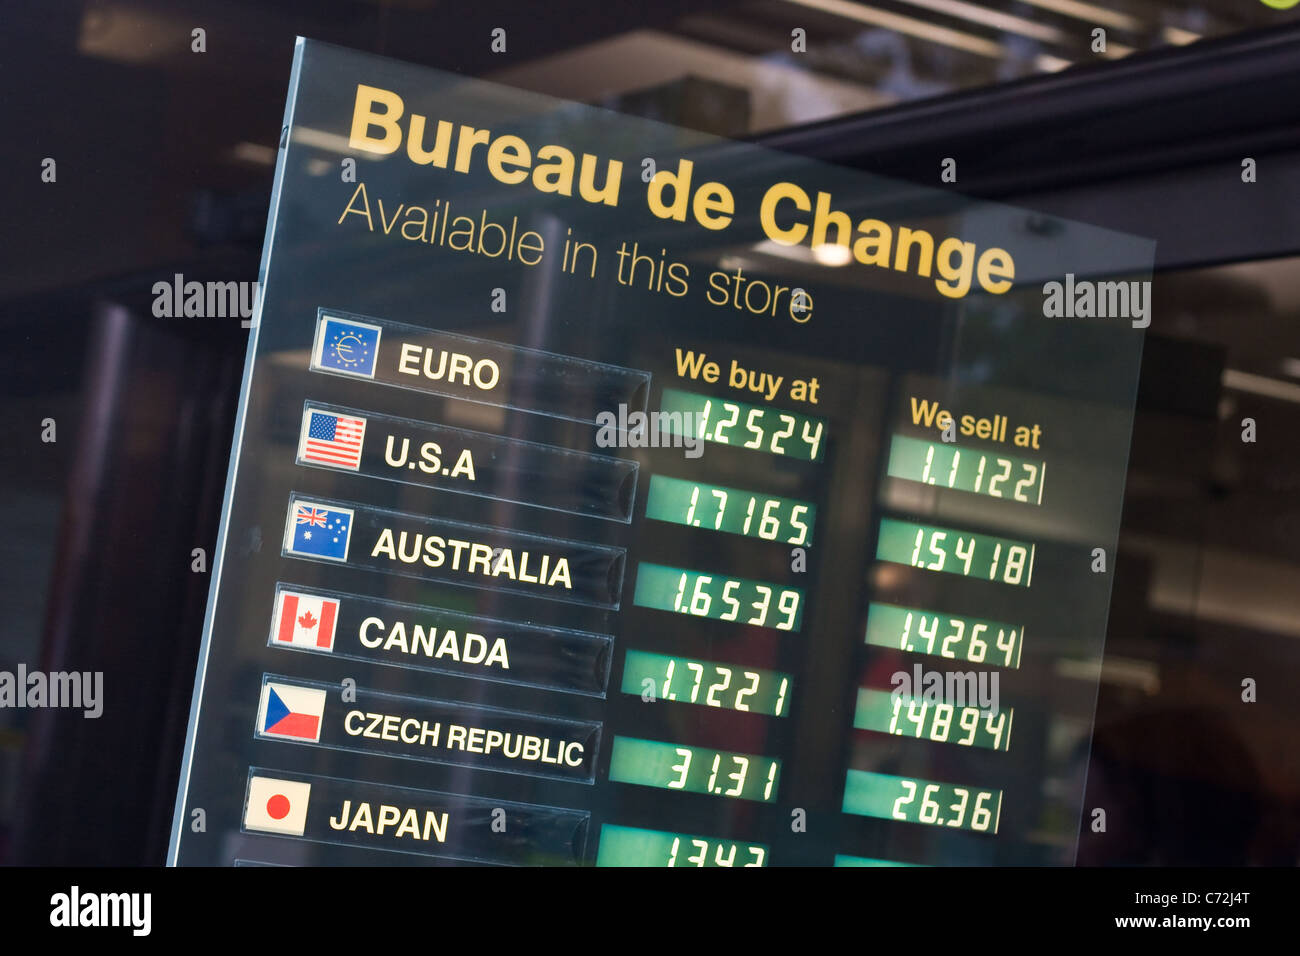 Exchange rates advertised at a Bureau de Change in the UK Stock